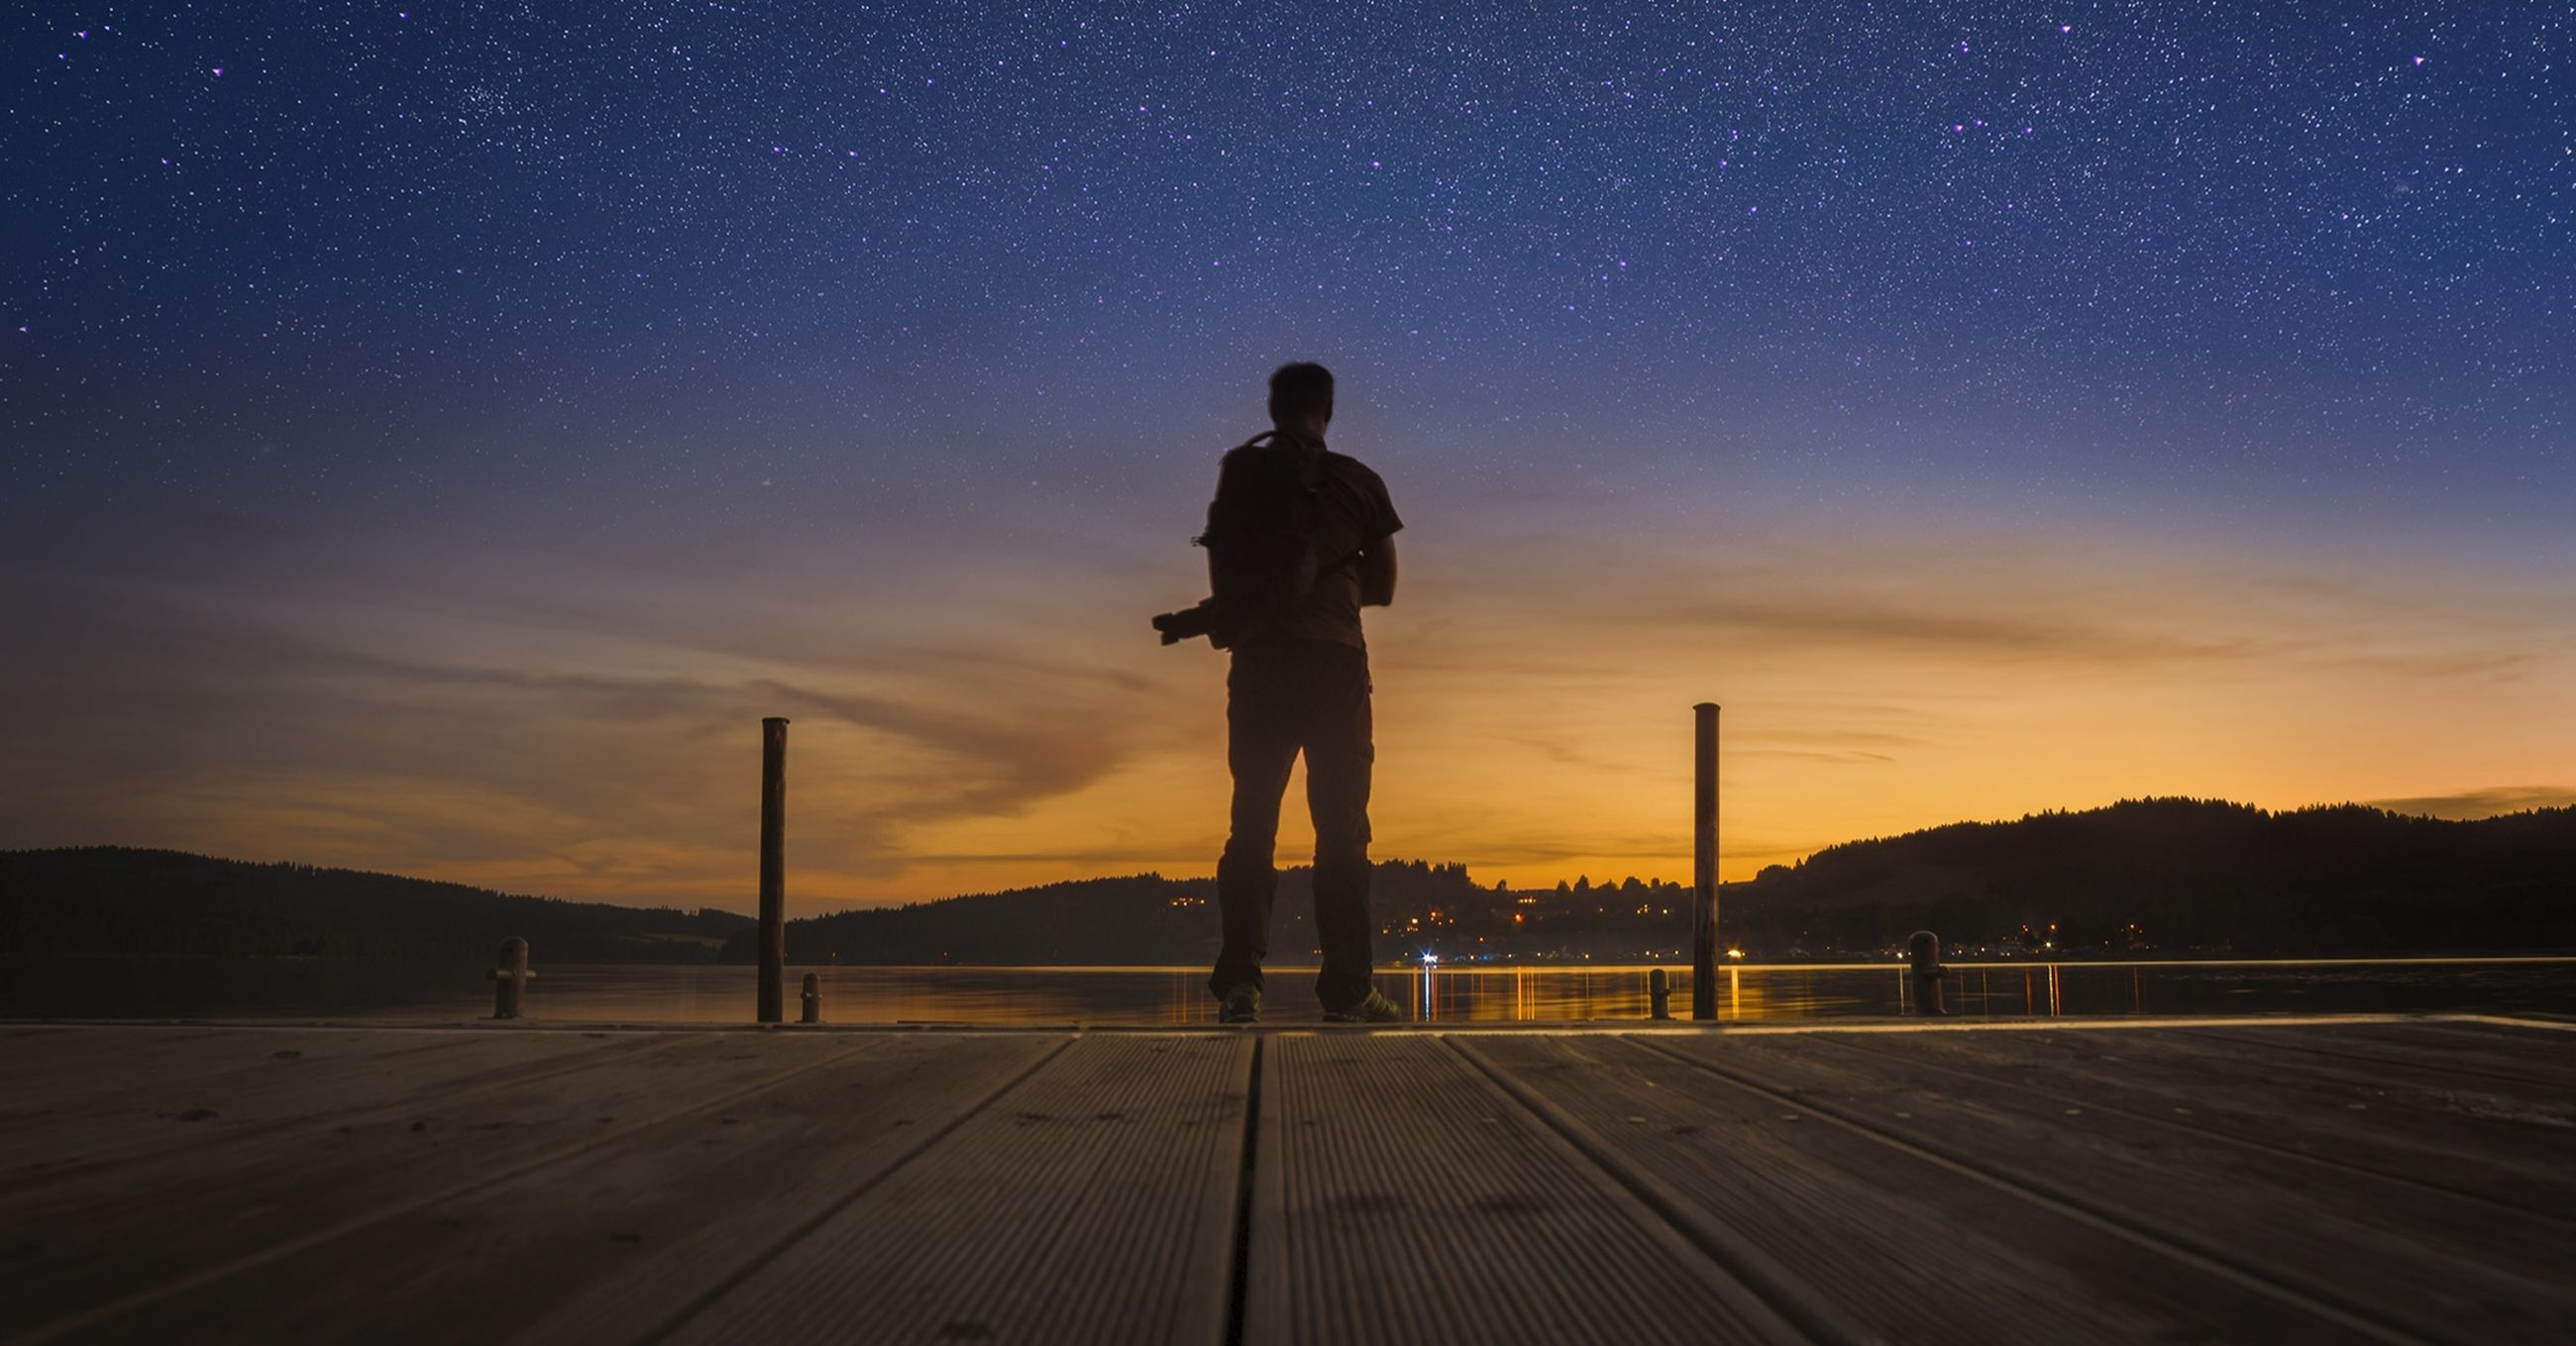 sky, star - space, one person, scenics - nature, space, real people, standing, night, nature, beauty in nature, sunset, silhouette, astronomy, lifestyles, leisure activity, outdoors, men, technology, star field